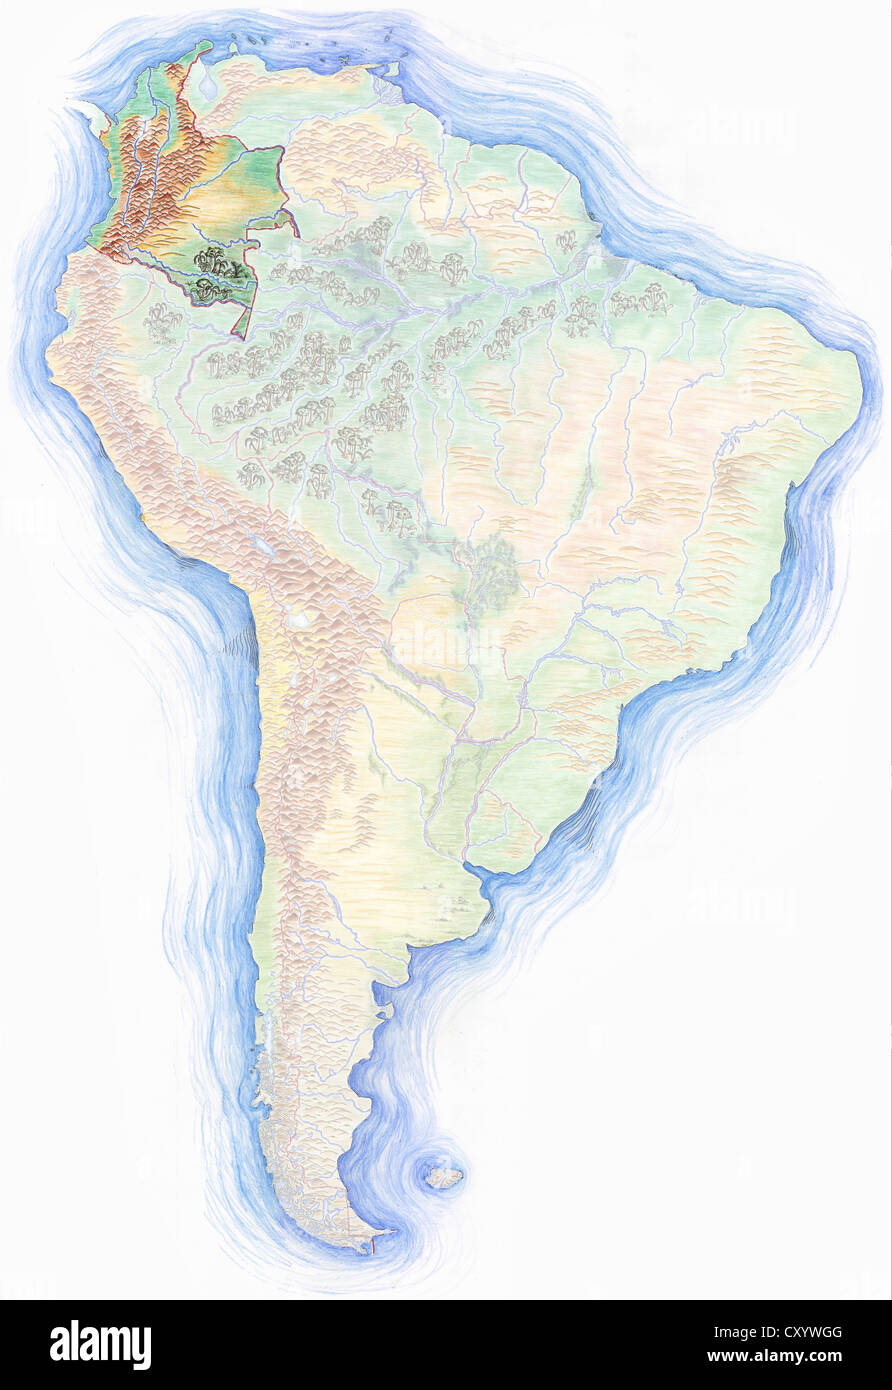 Highly detailed handdrawn map of South America with Colombia